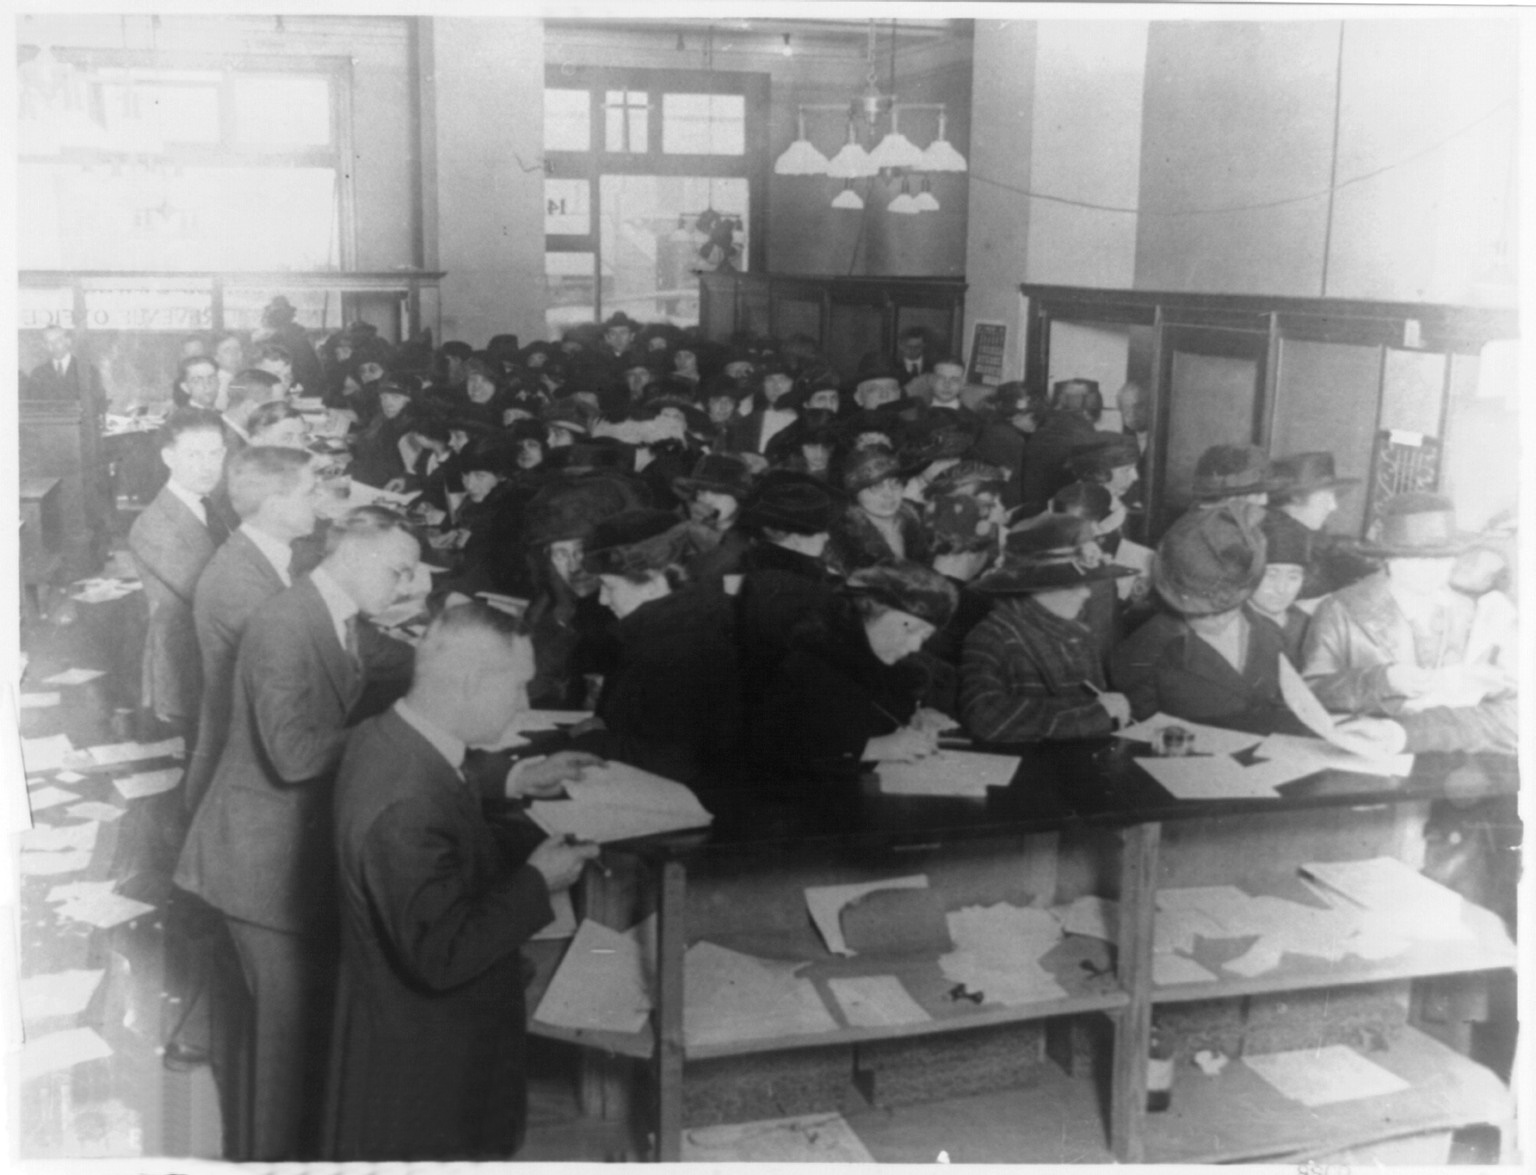 Filing tax form in 1920s at IRS